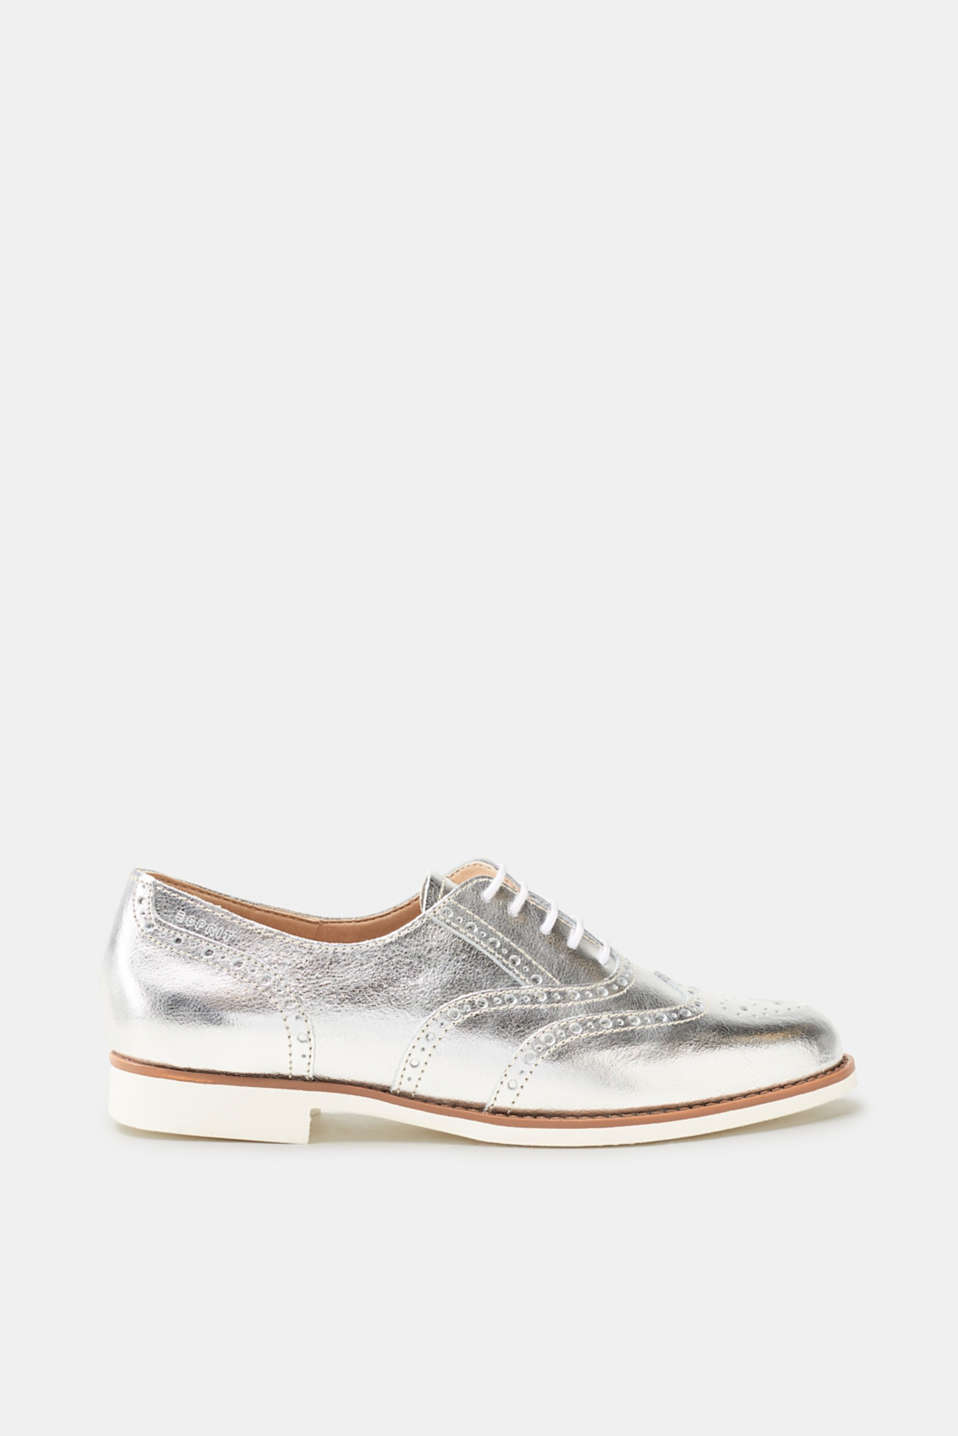 Esprit - Leather lace-ups in metallic with white soles